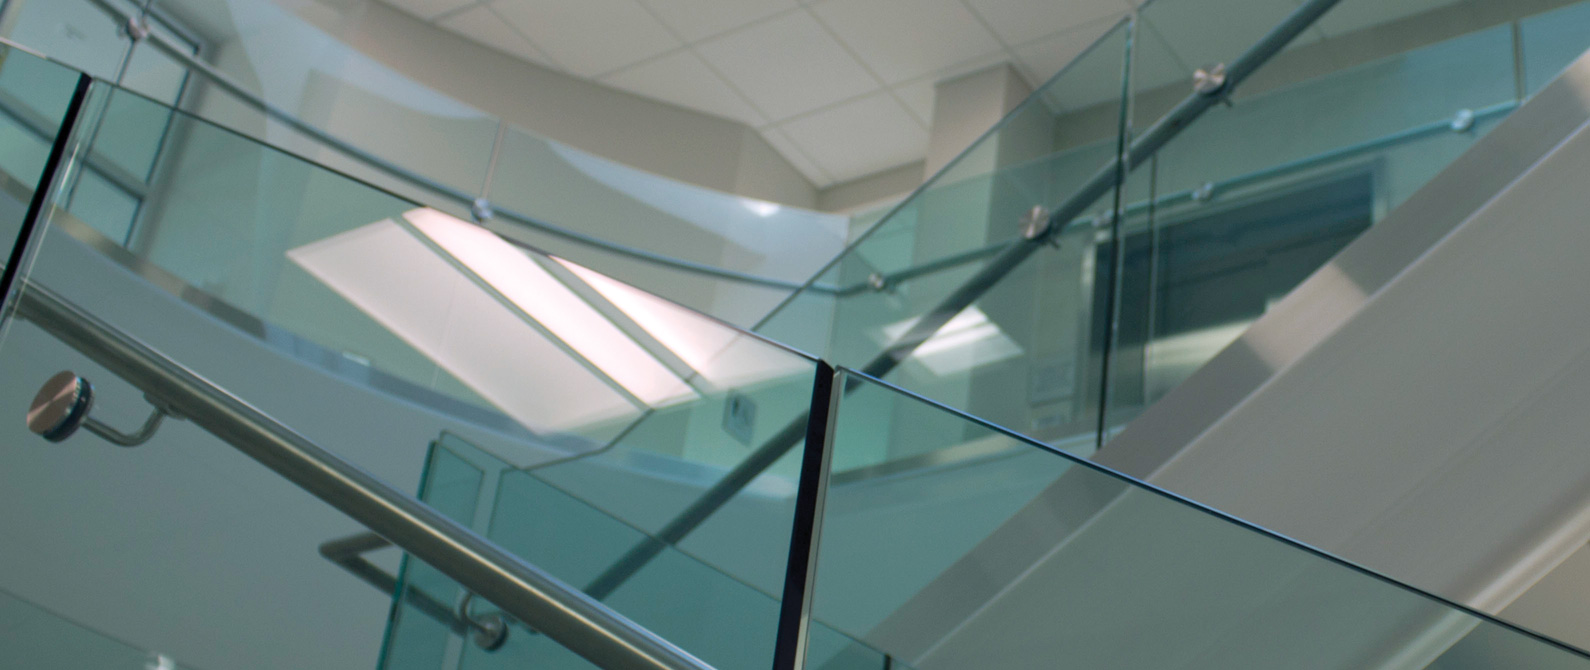 Glass side of staircase inside the hub